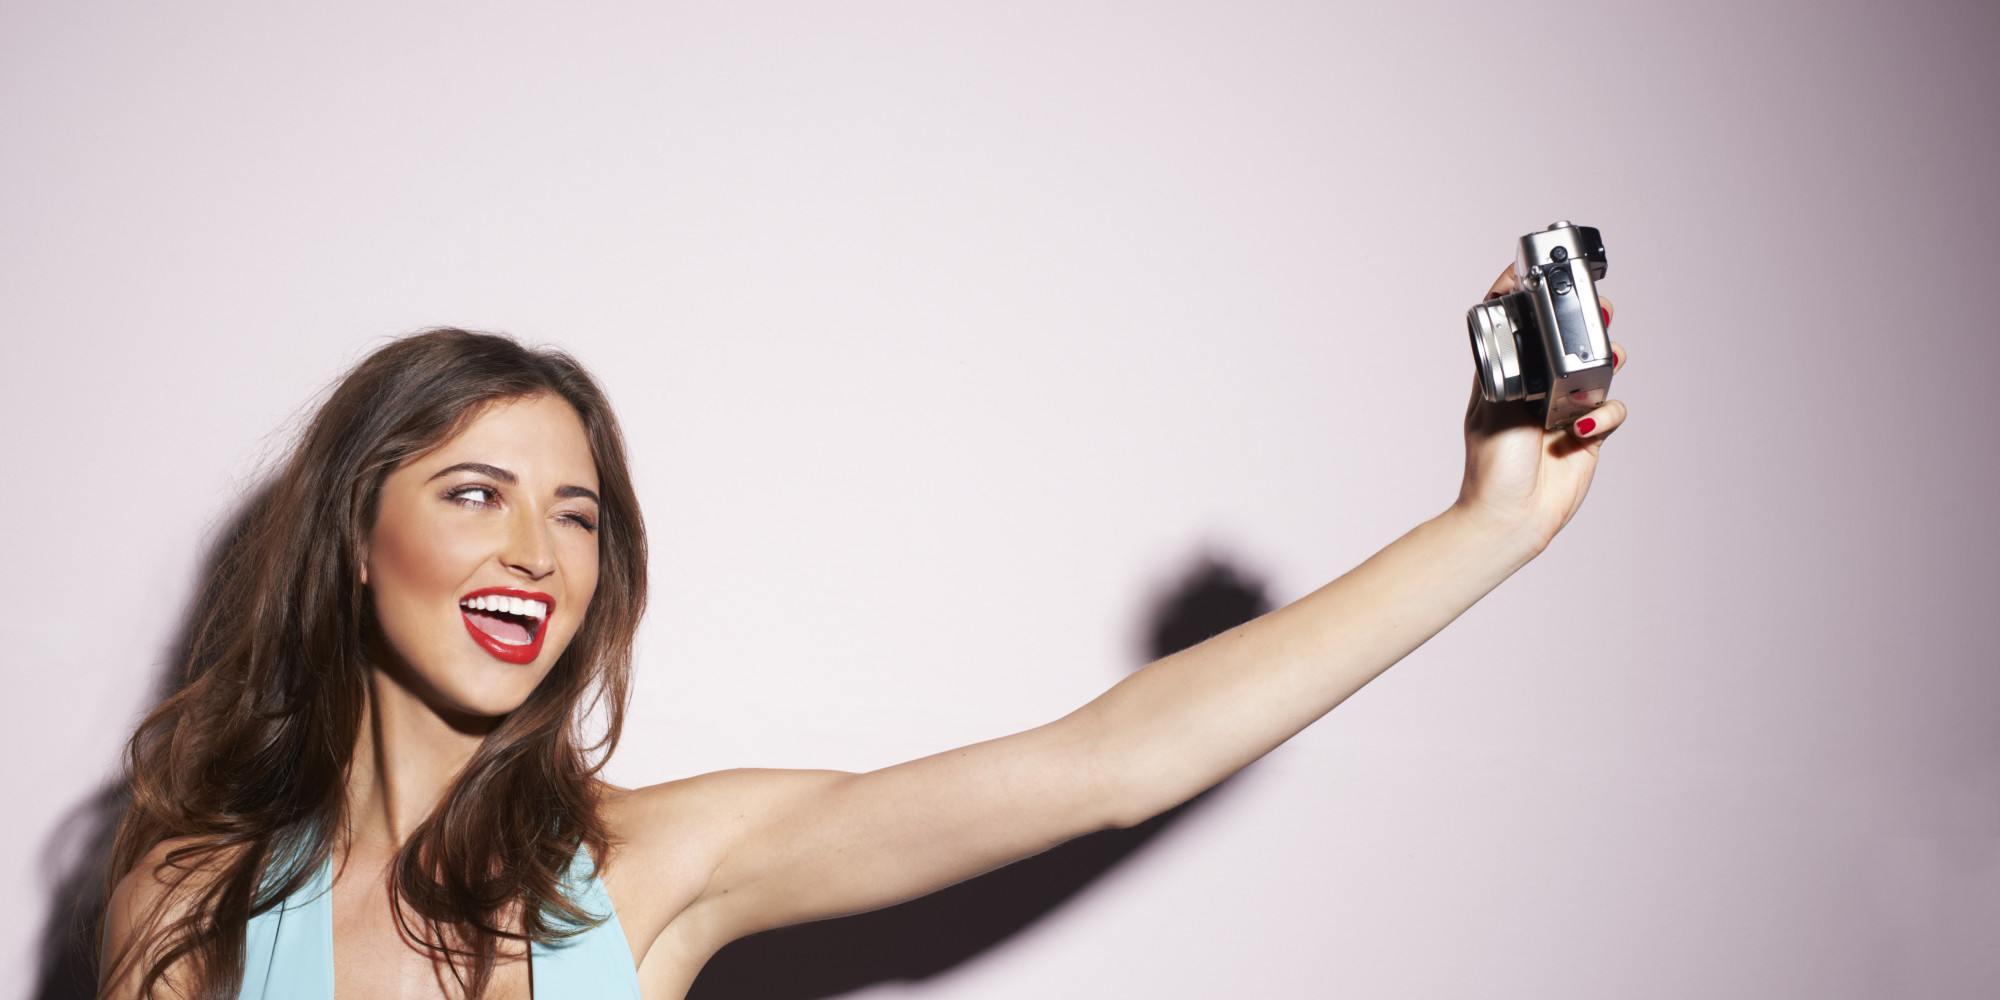 The future is here: You can now pay bills with a selfie